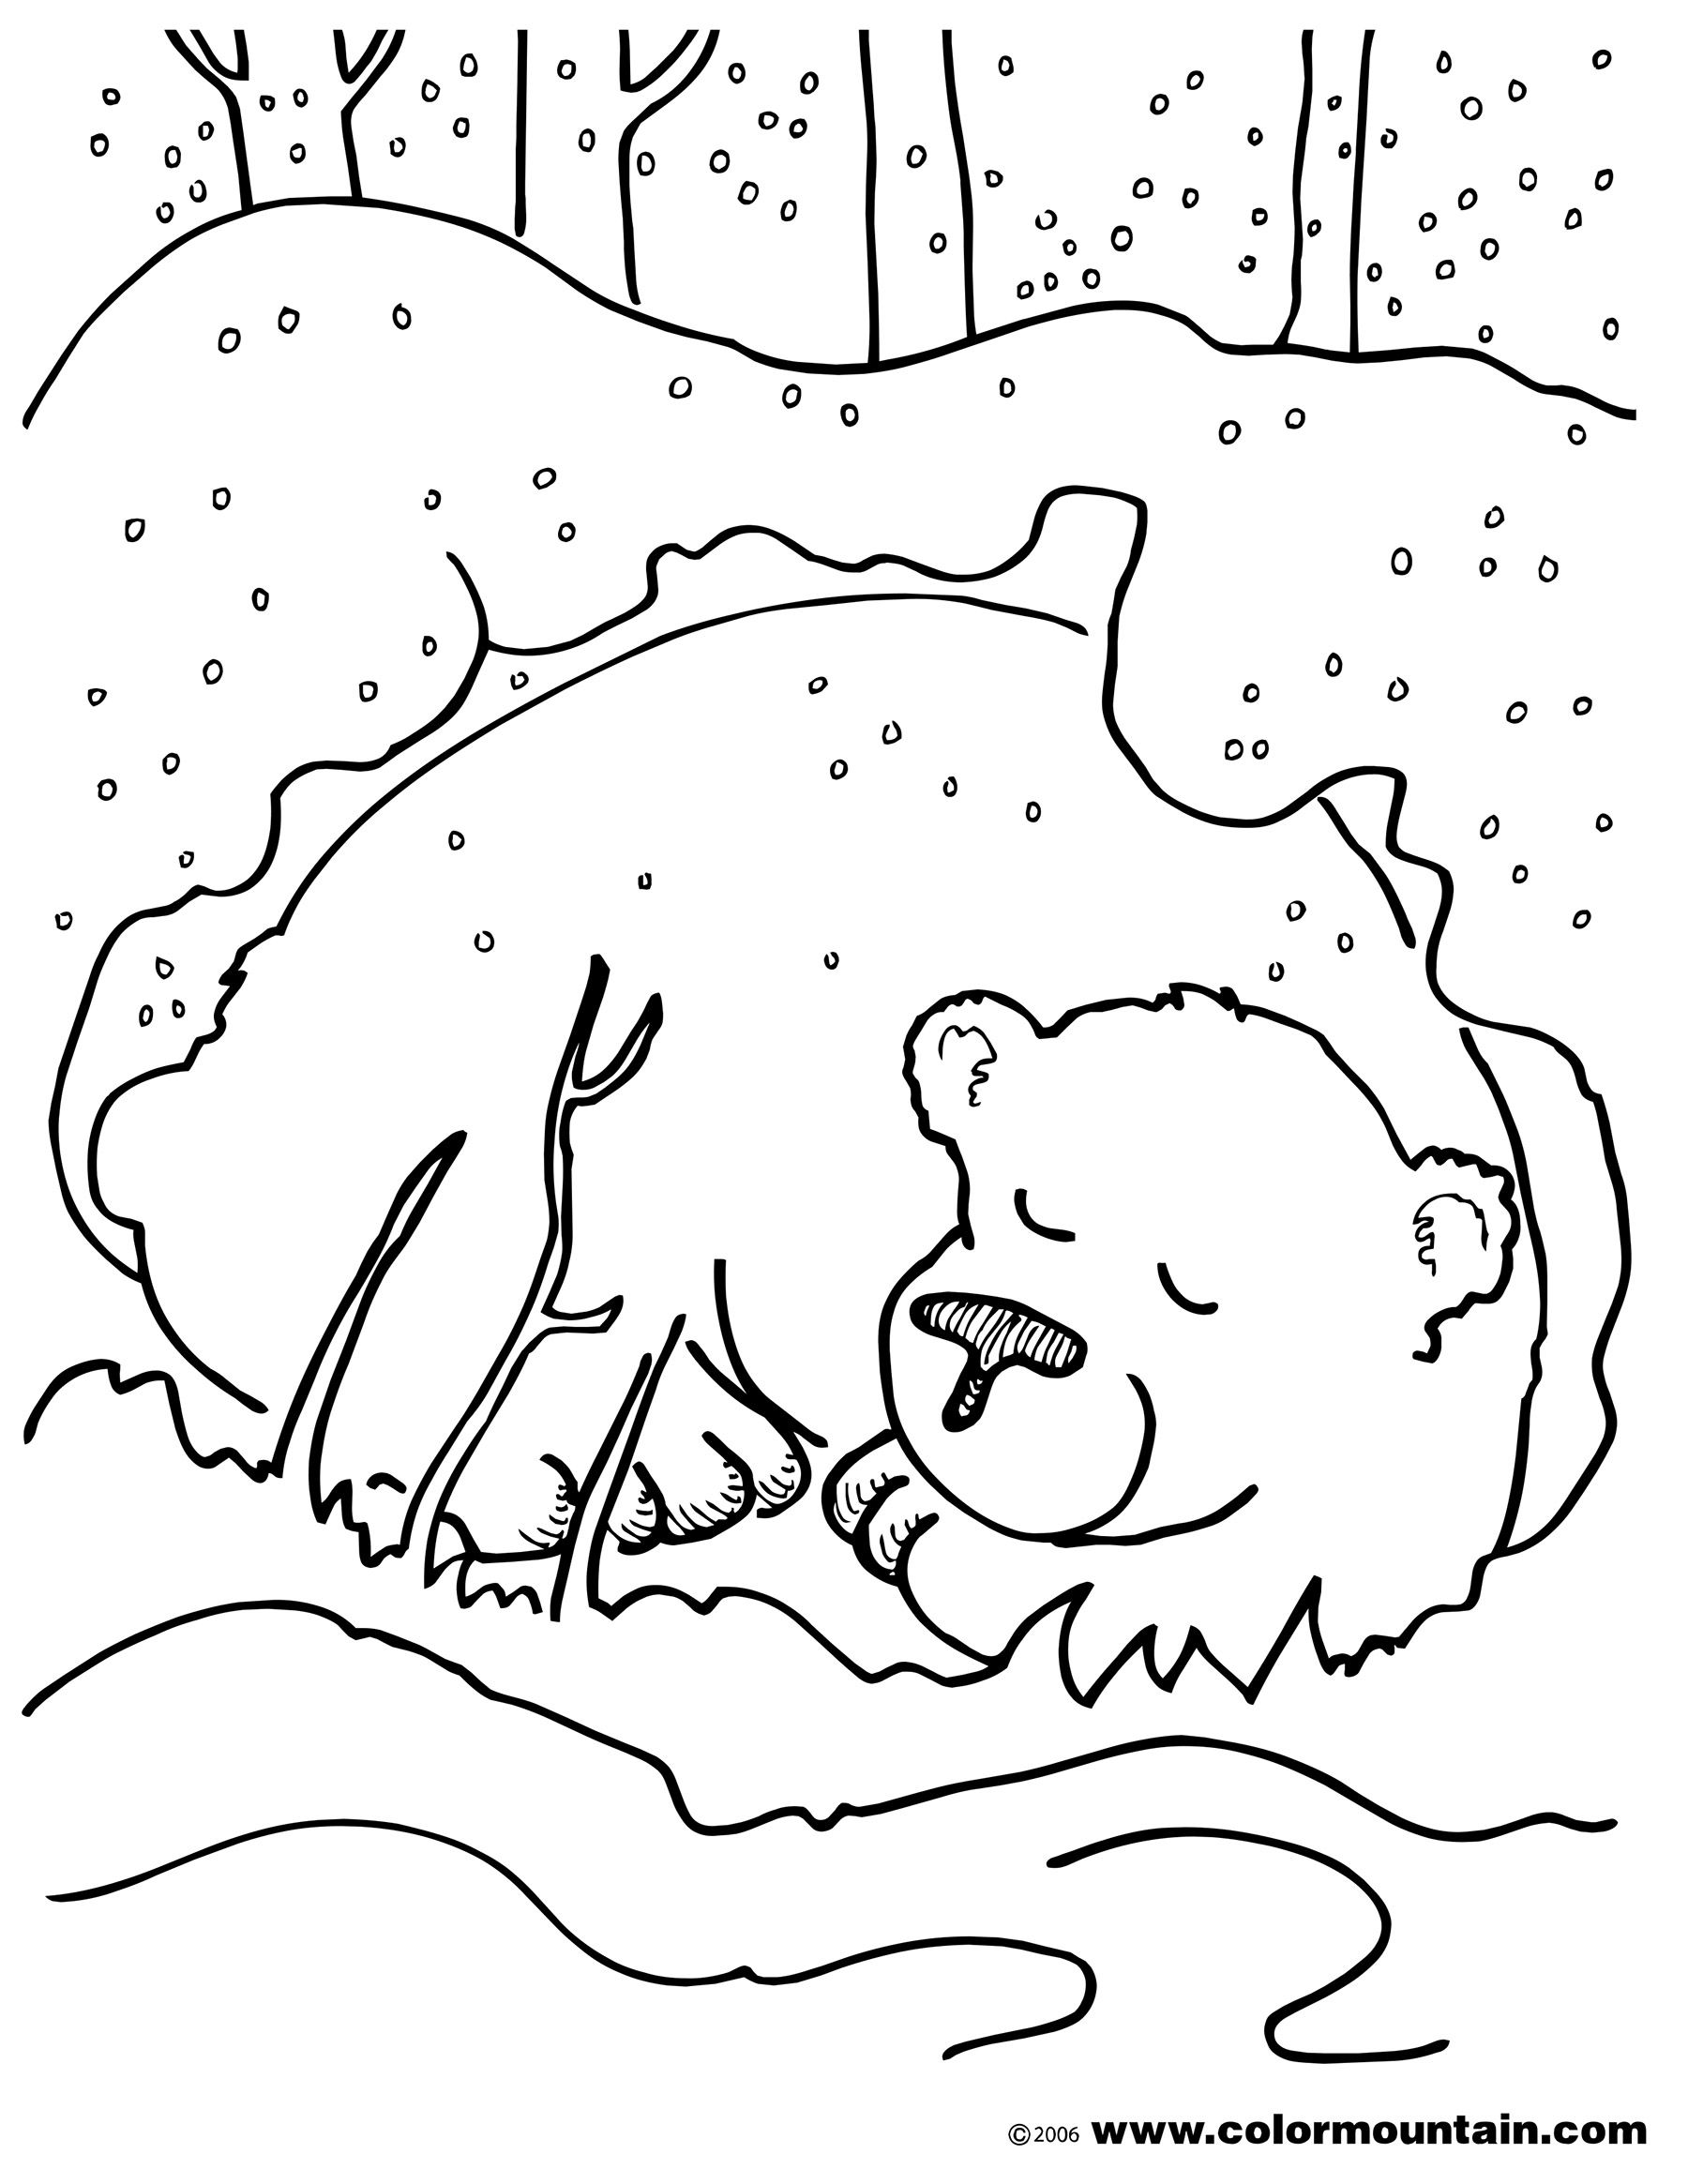 hibernating bear color sheet coloring page | Preschool ☃️January ...